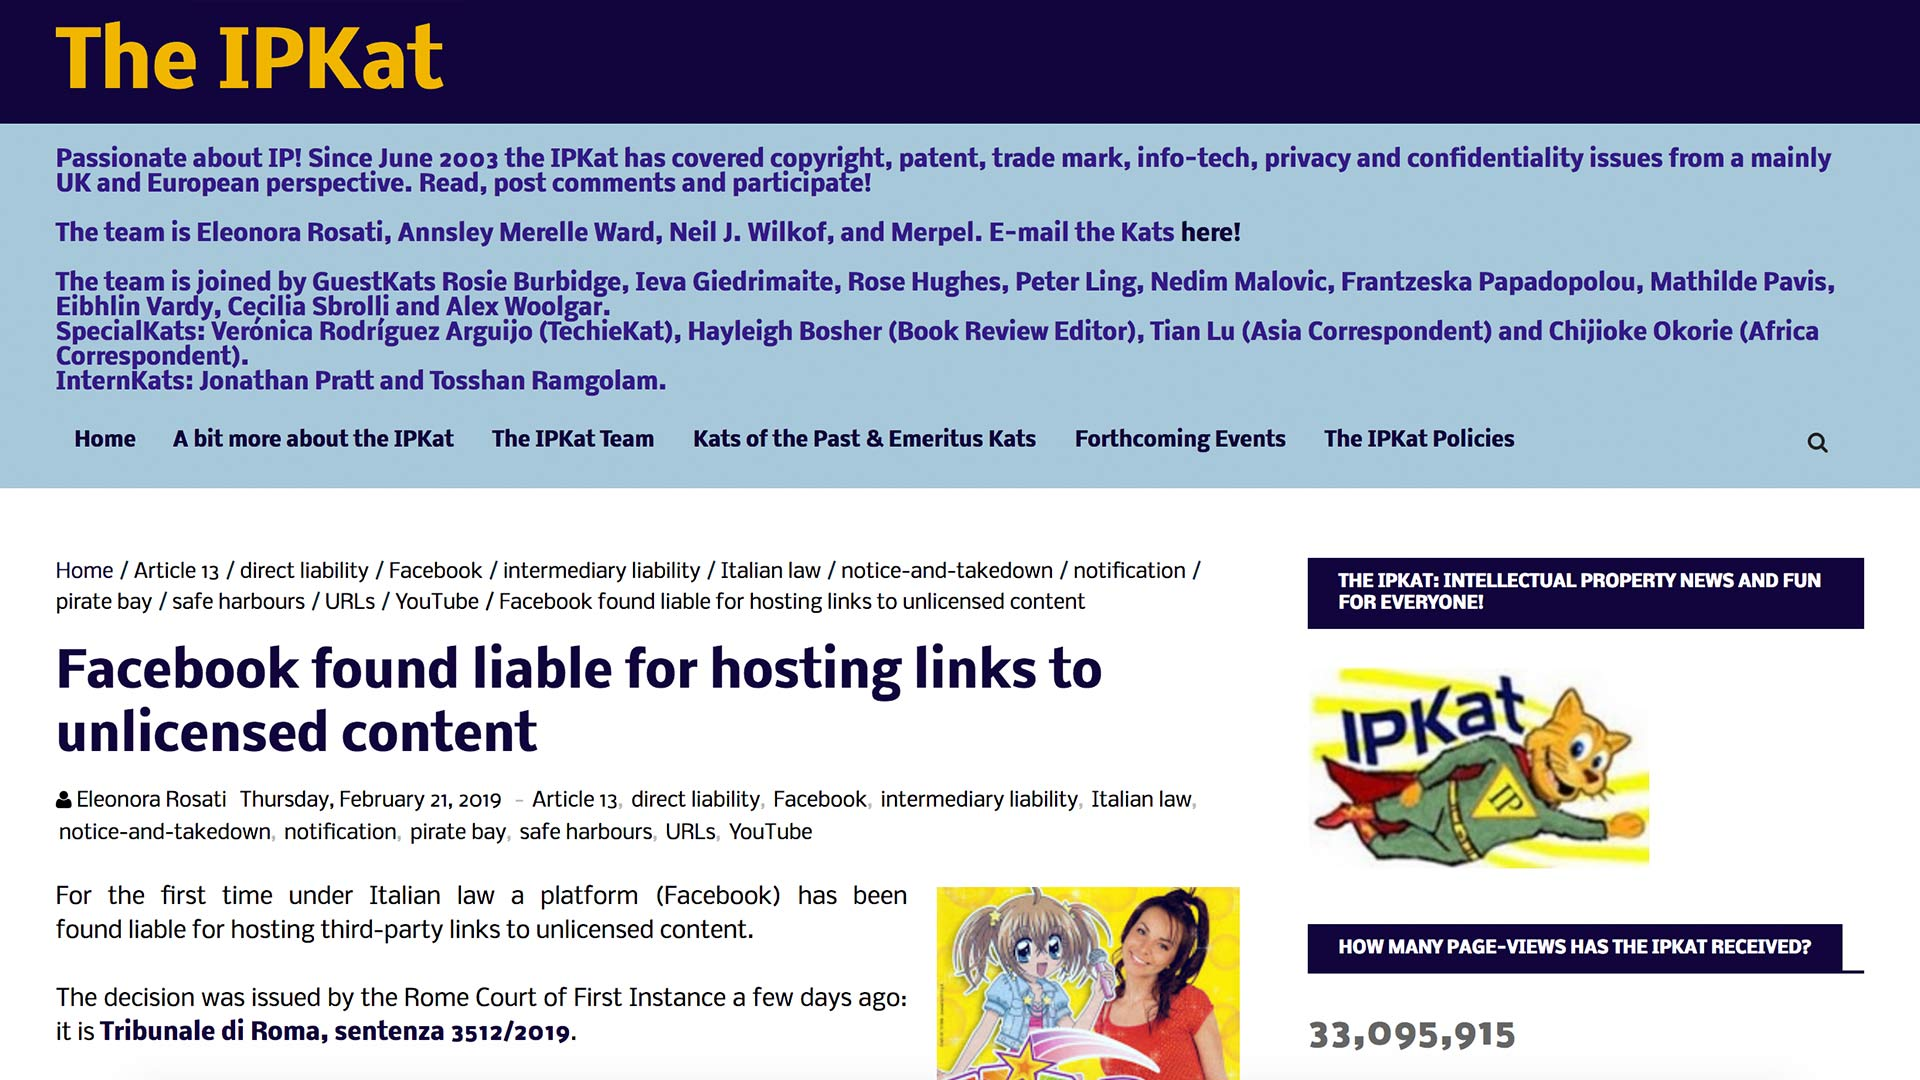 Fairness Rocks News Facebook found liable for hosting links to unlicensed content